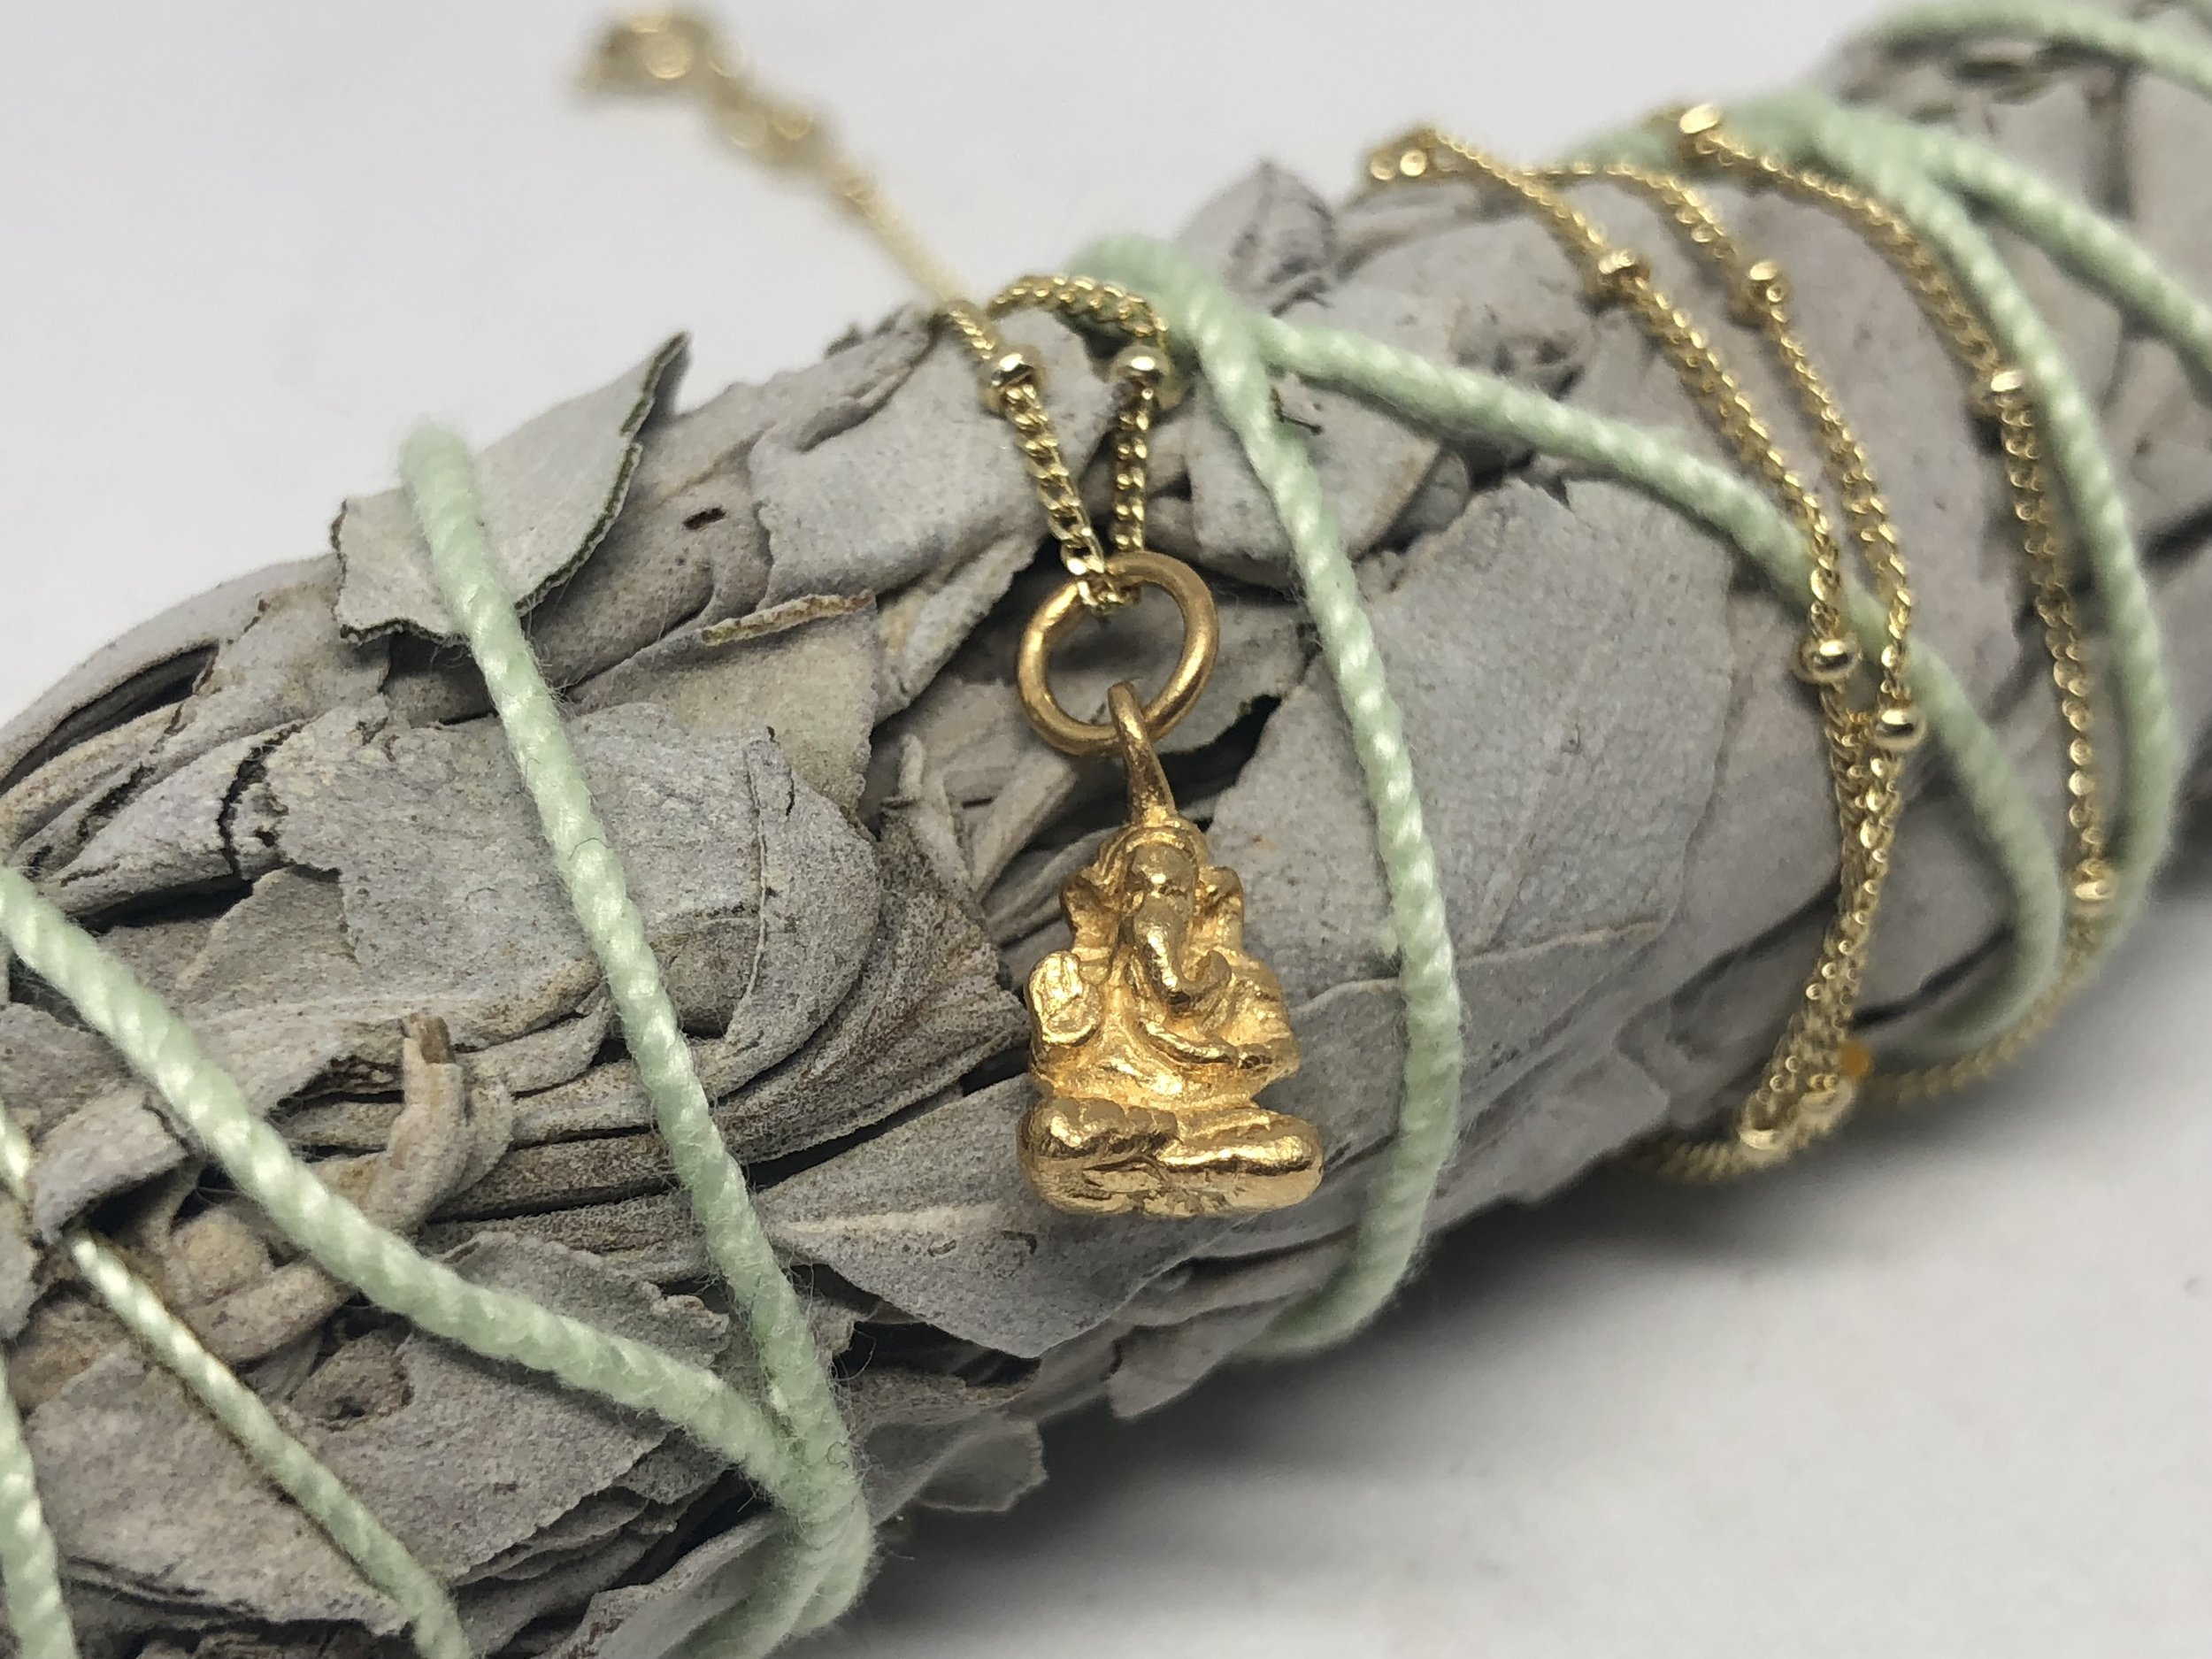 Mini Ganesha - Mini Ganesha necklace made of sterling silver gold plated with gold plated necklace. Click on image to shop